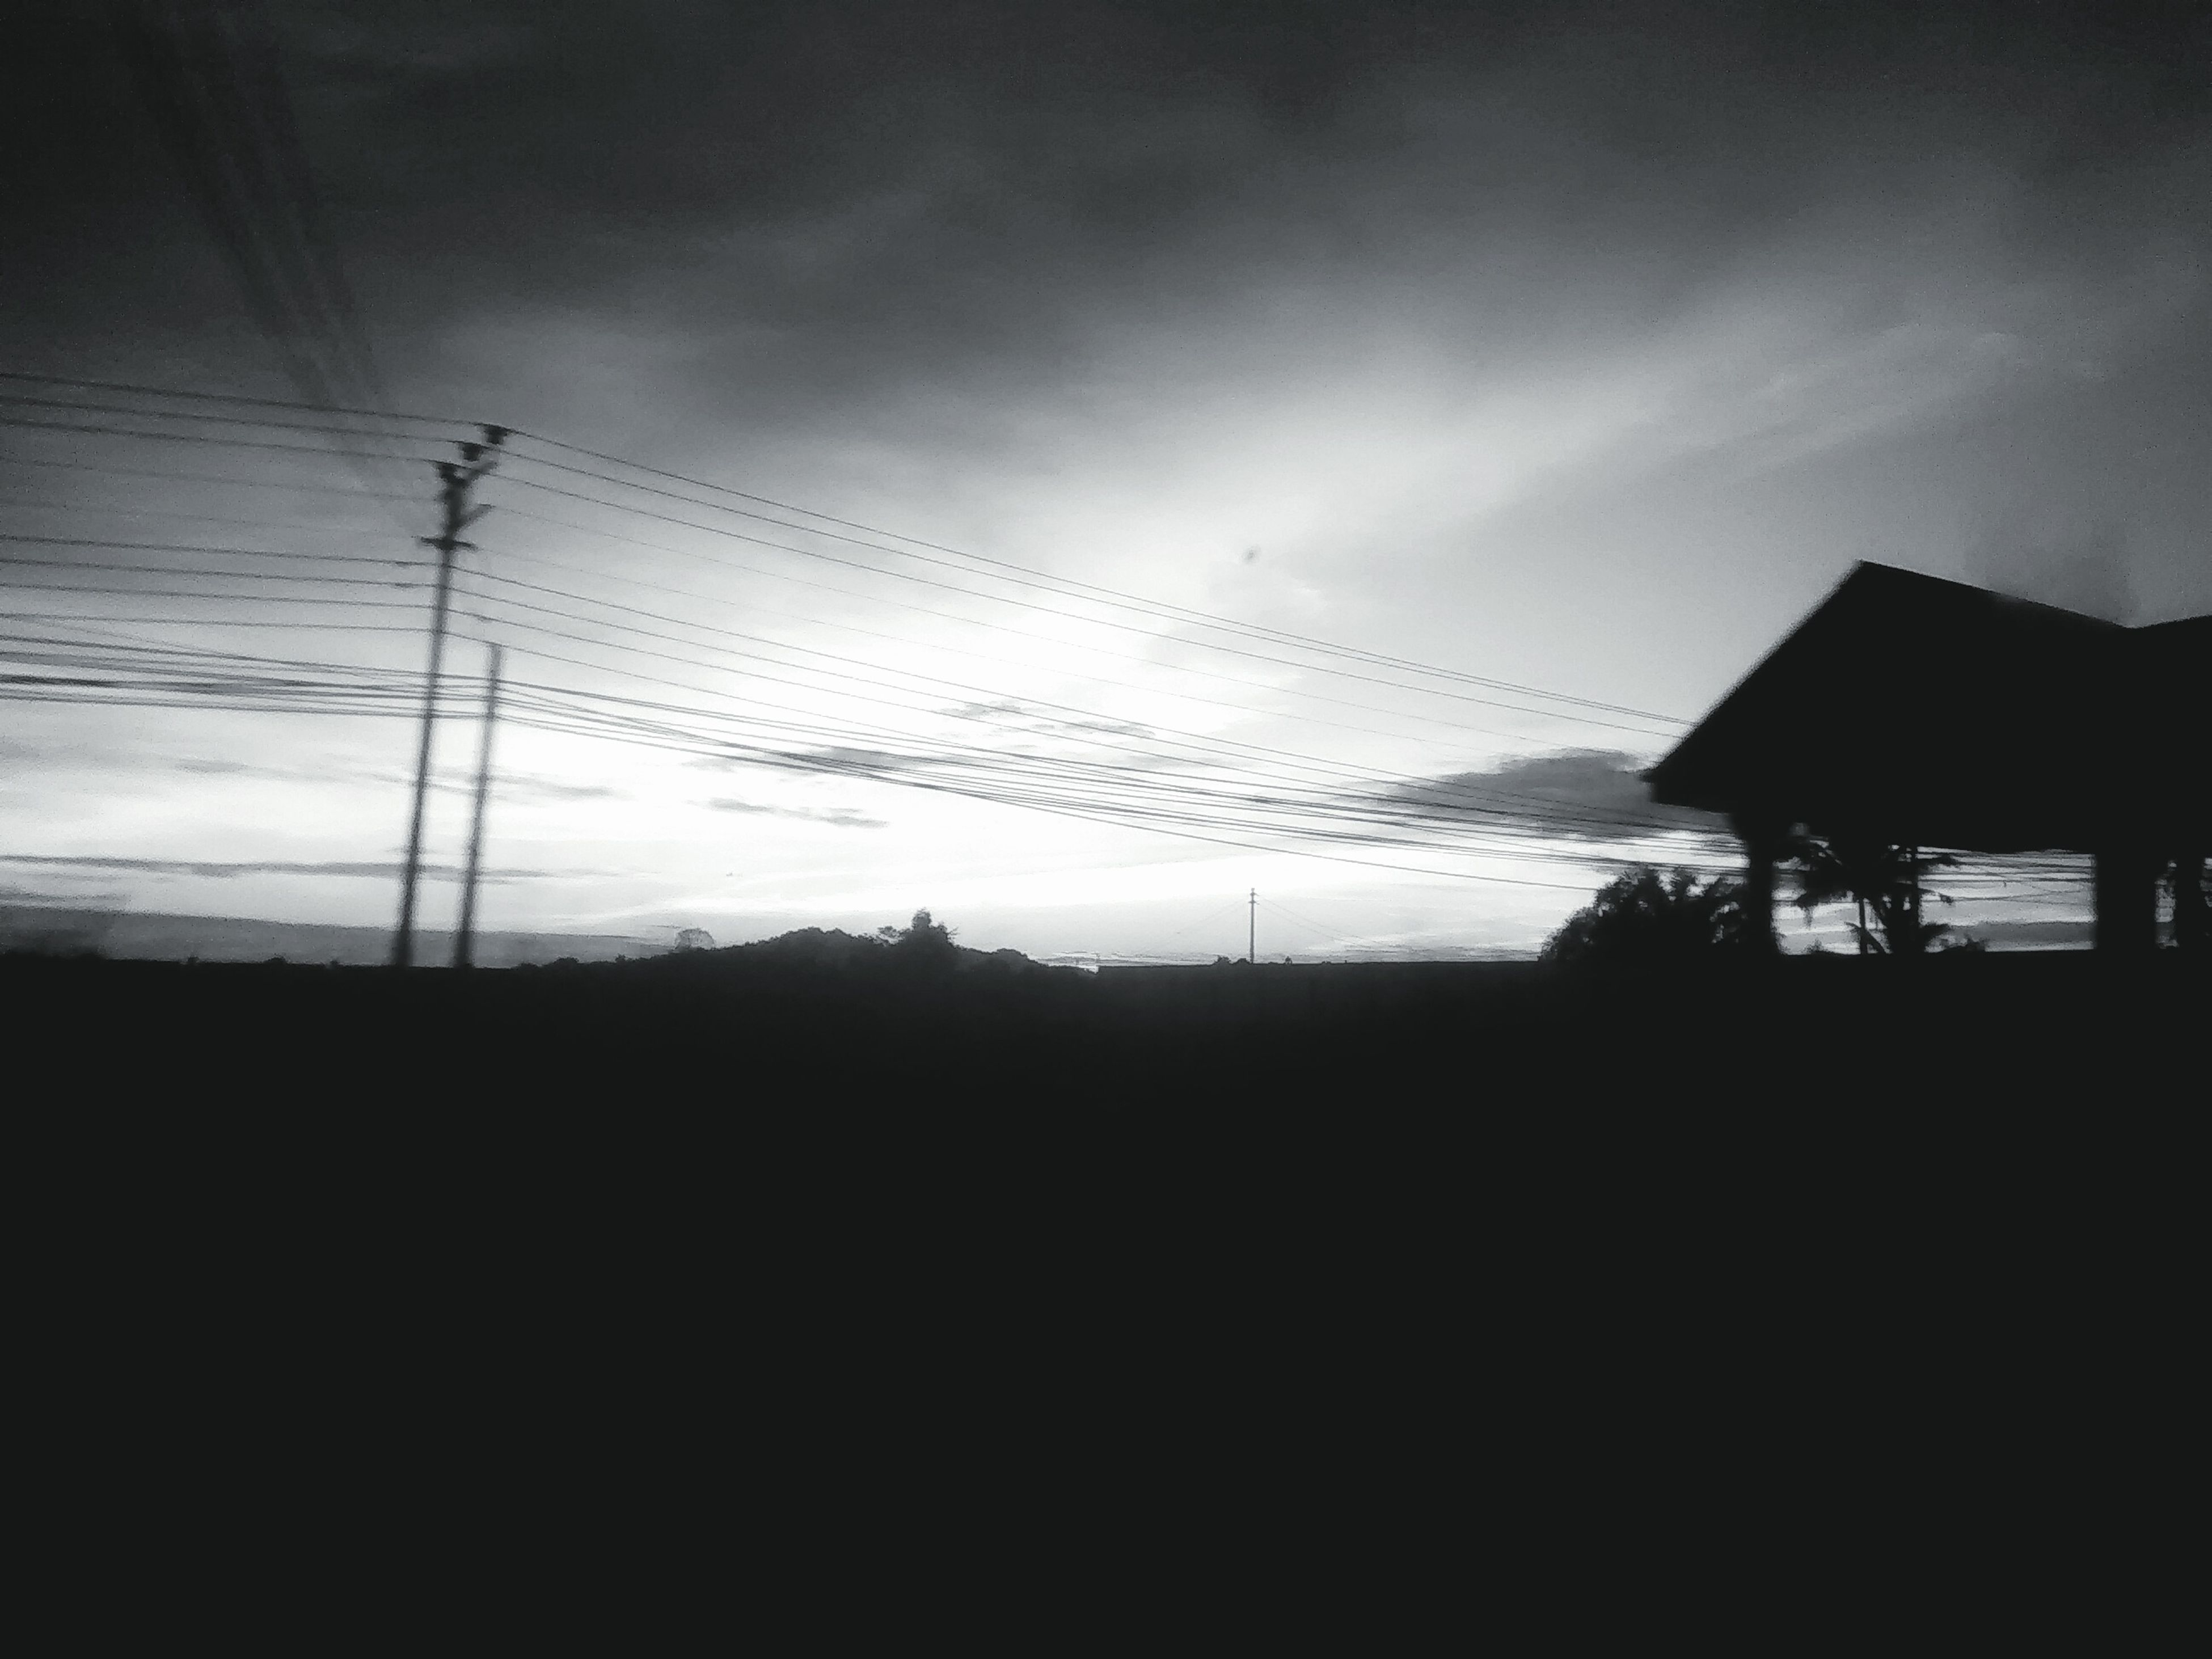 silhouette, cable, electricity pylon, sky, electricity, power line, no people, nature, landscape, tree, outdoors, architecture, day